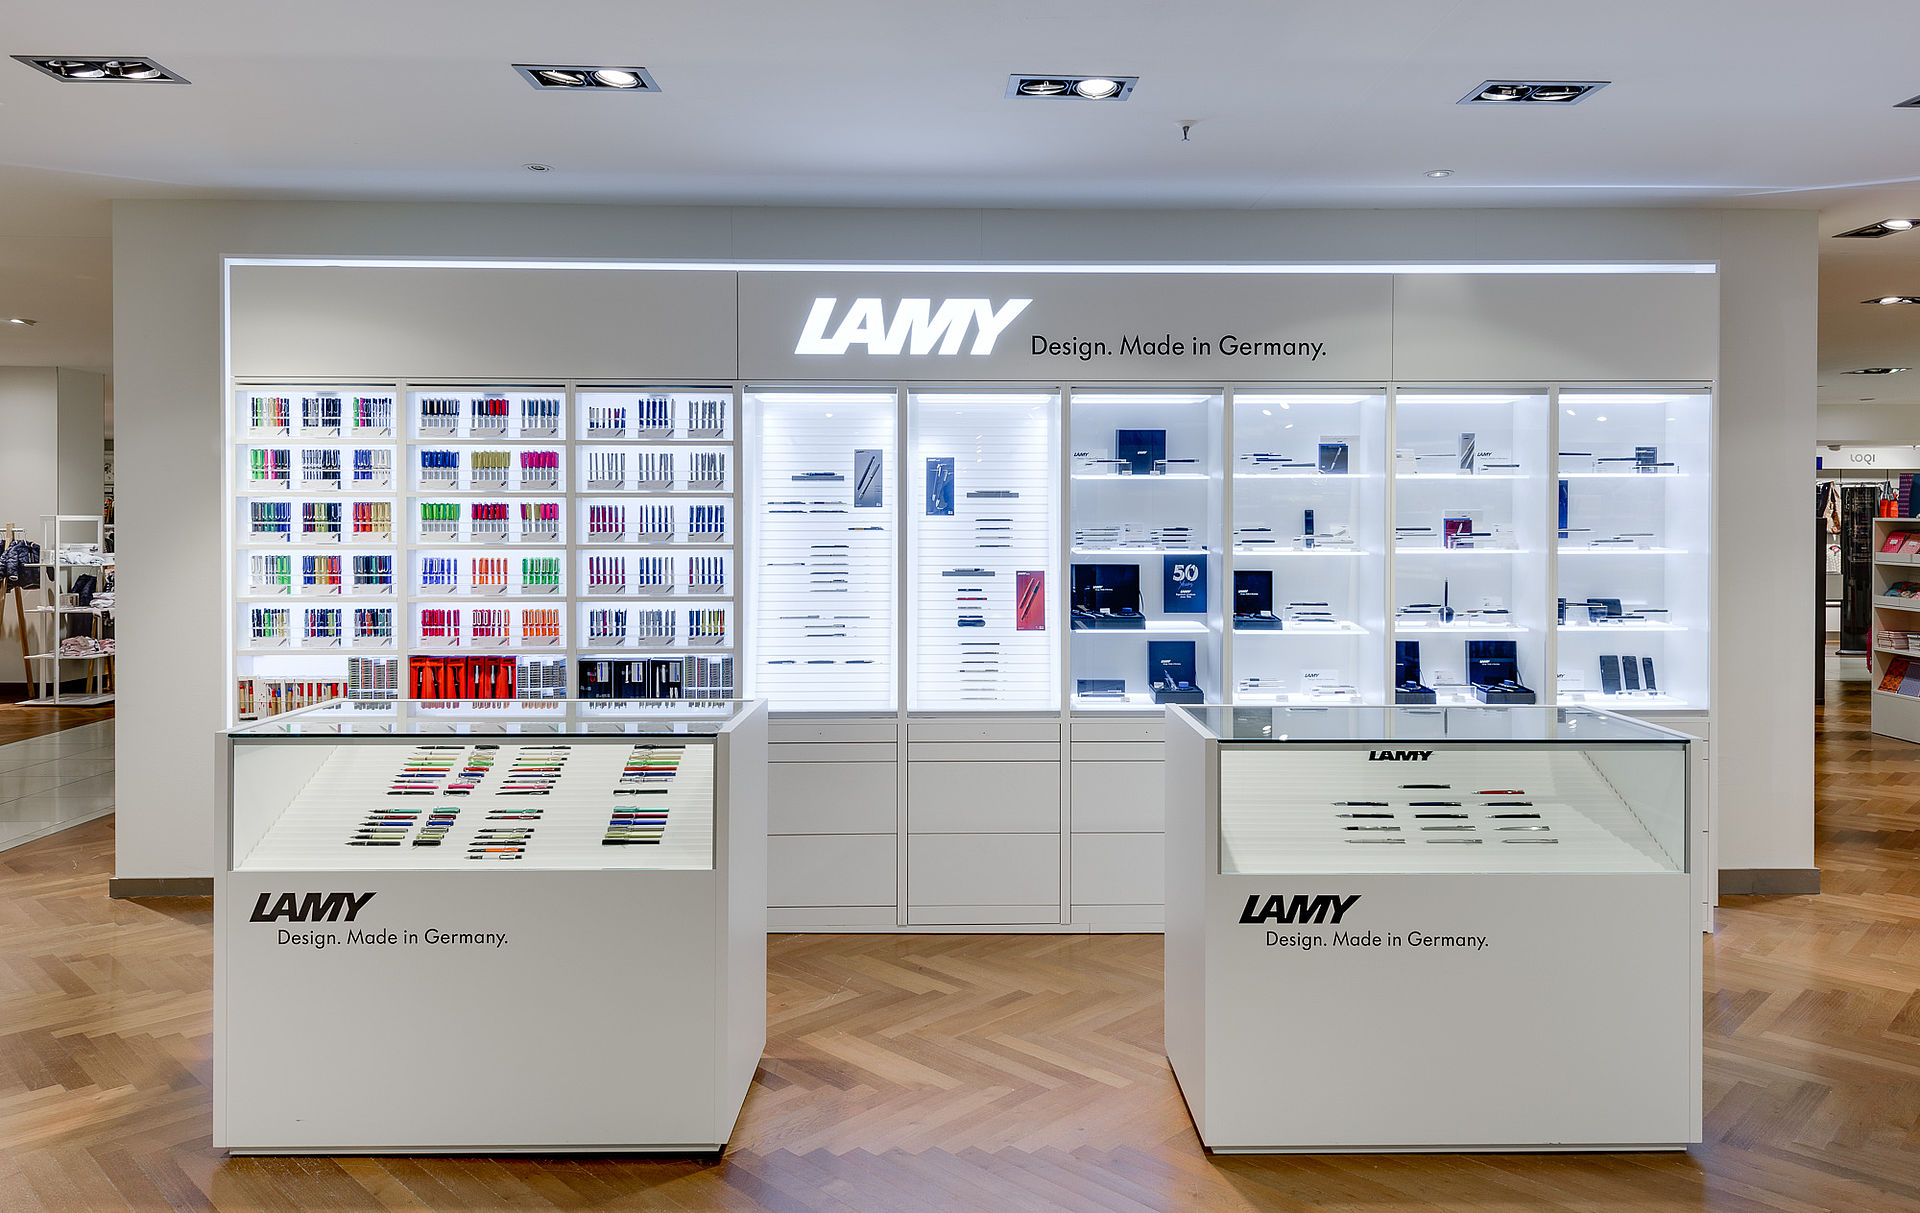 lamy shop in shop bohnacker ladeneinrichtungen gmbh. Black Bedroom Furniture Sets. Home Design Ideas